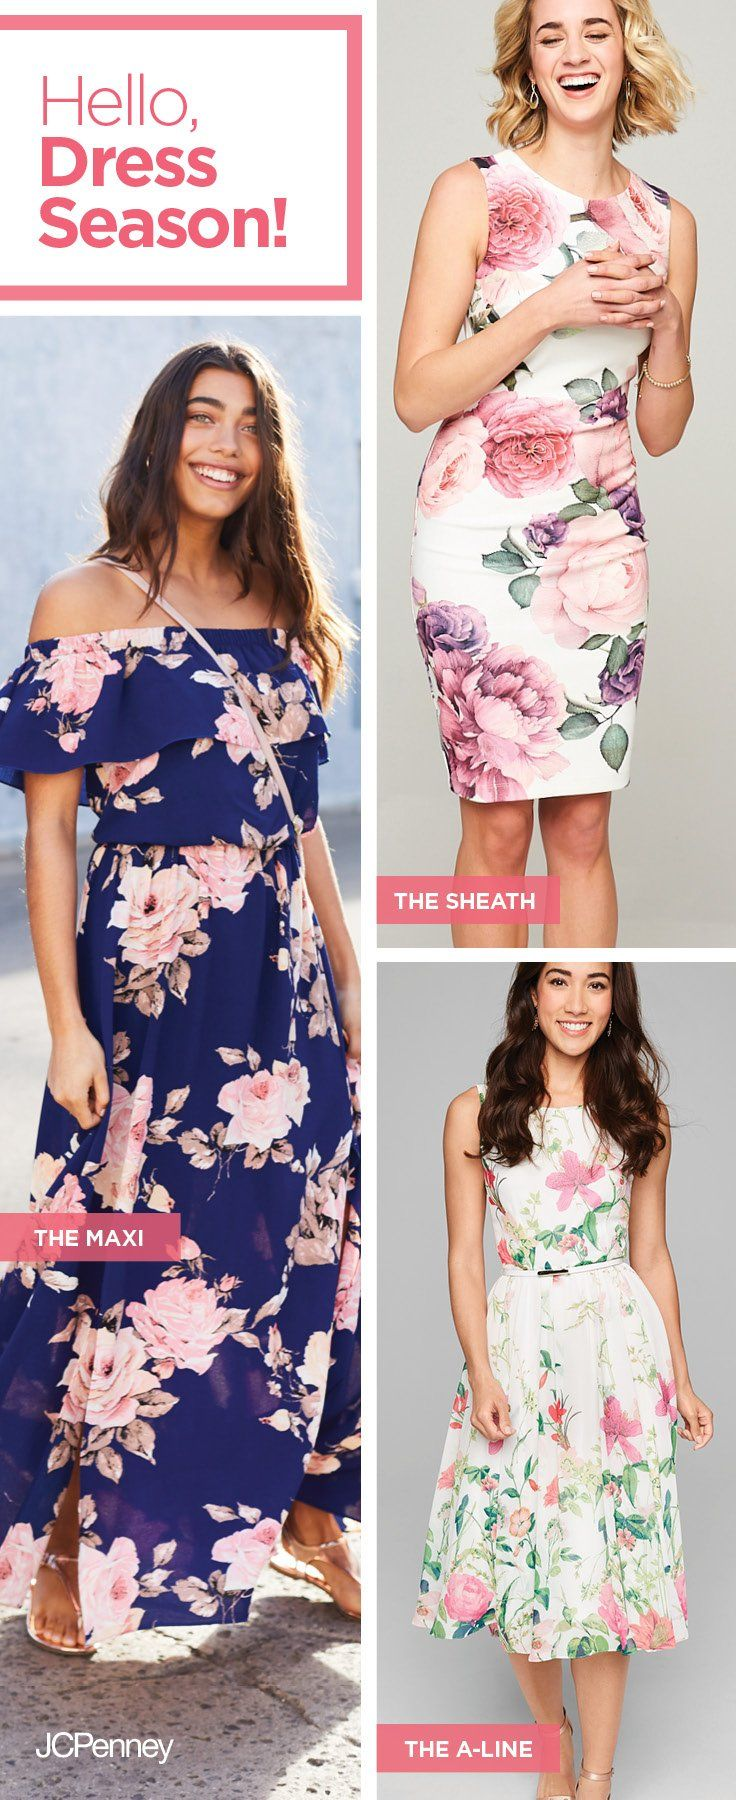 Spring dress season has arrived! And that means it's time to swap out your cold-weather wardrobe with fresh styles like these flirty spring dresses. Floral details, feminine prints and flattering fits are what every girl needs in her springtime closet. Whether you're going for a sweet and girly look to wear to brunch with the besties or something more casual and flowy to wear on-the-go—the perfect spring dress you'll want to wear all season can be found here.